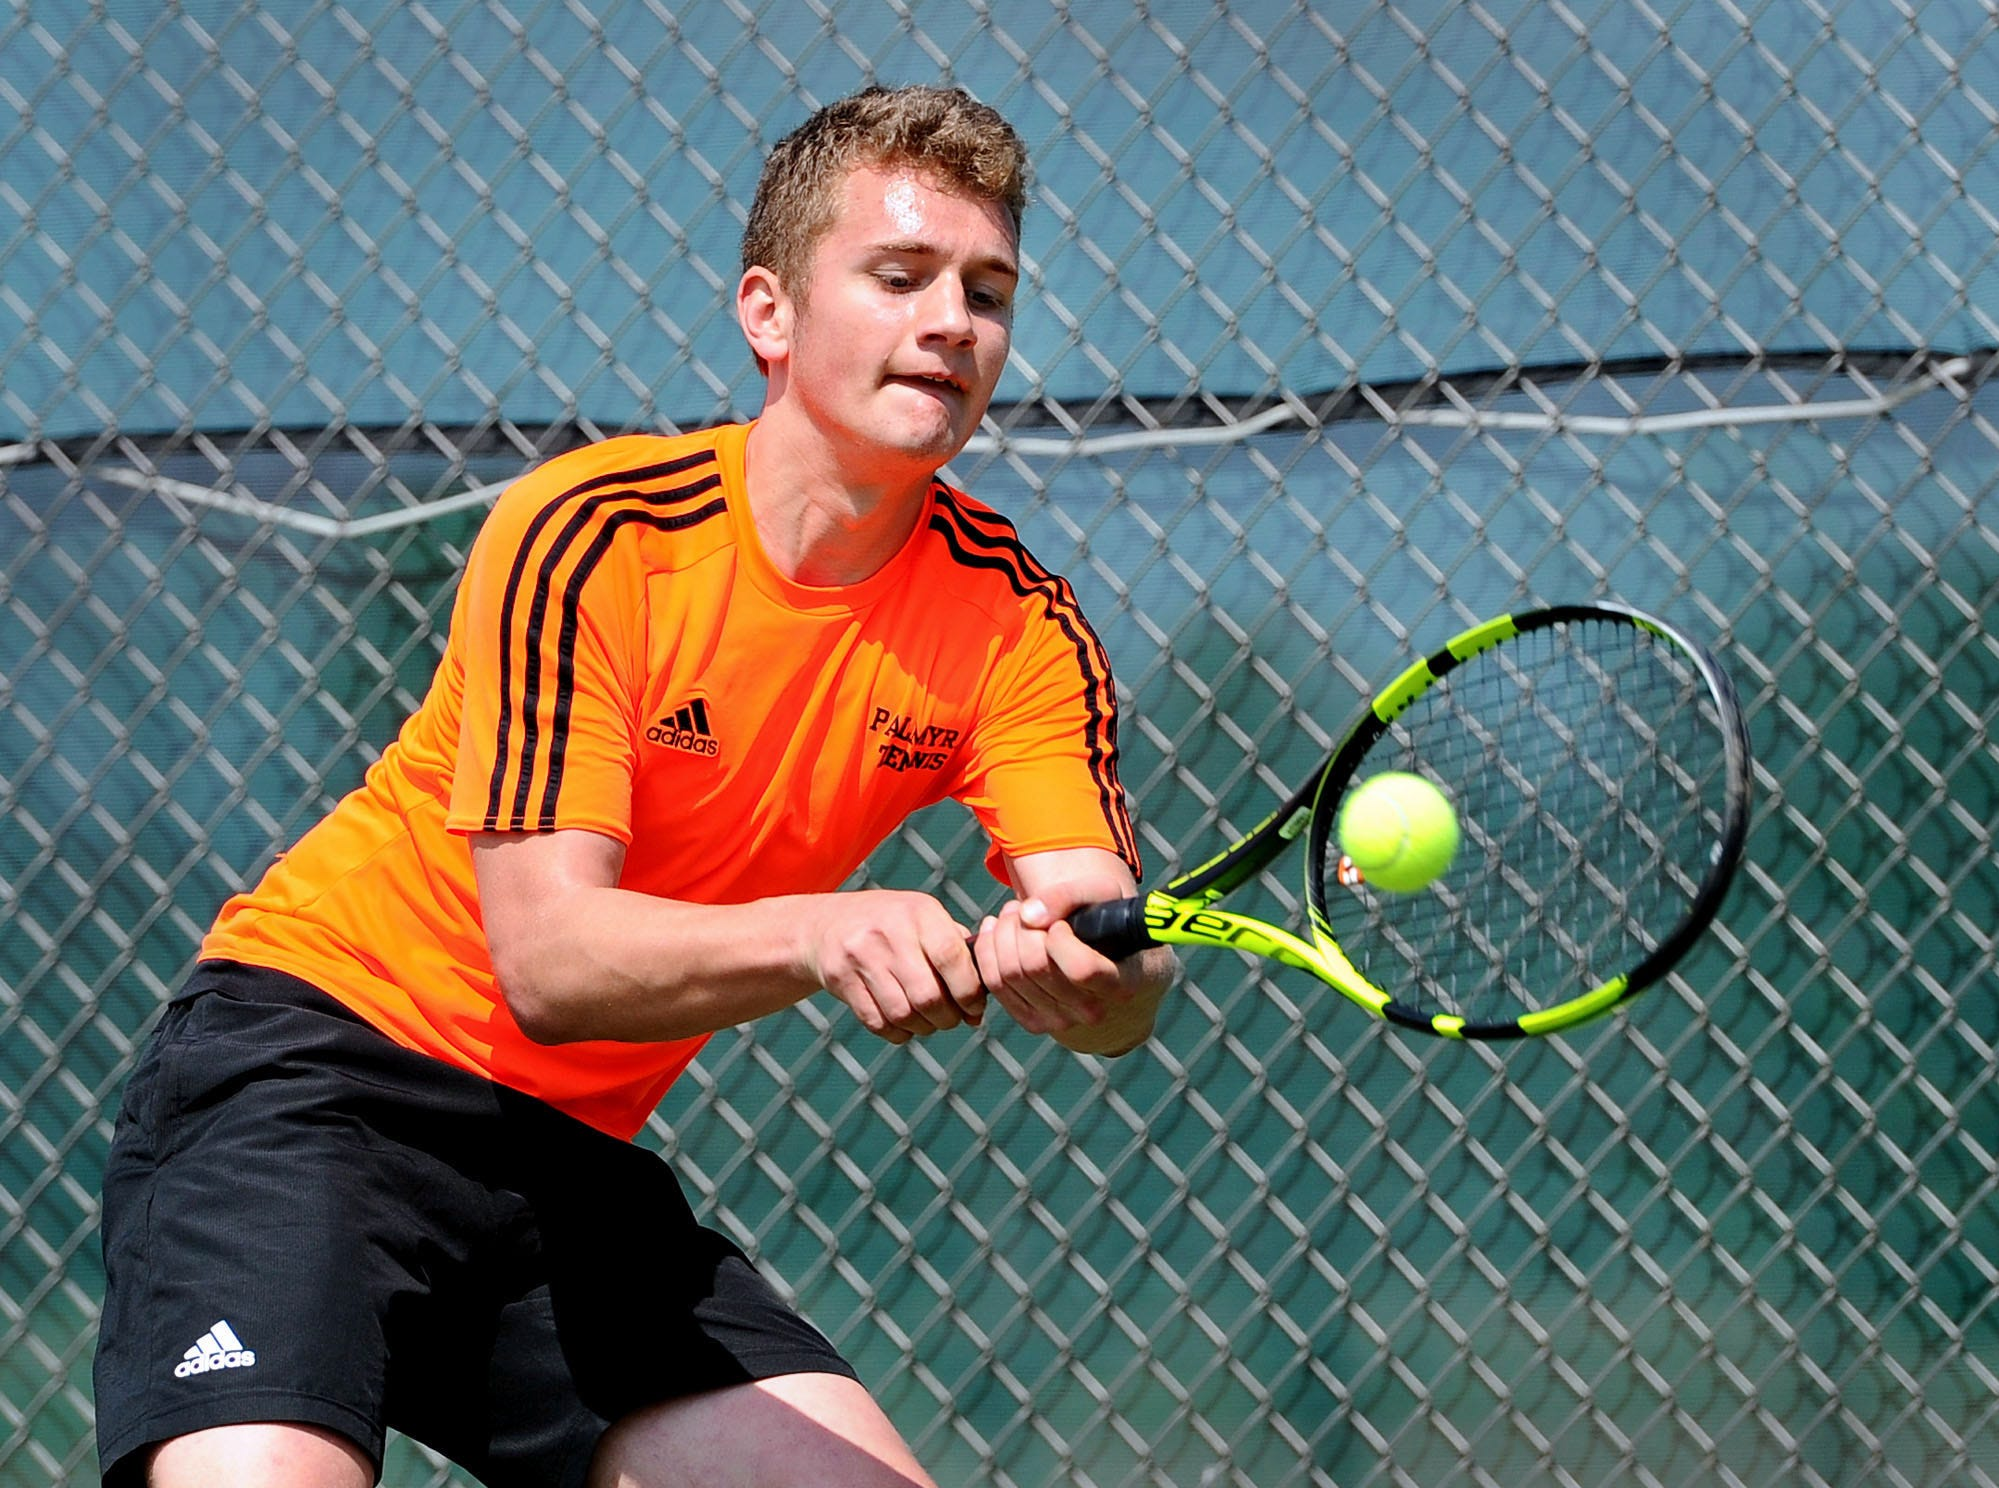 Palmyra's Ben Clary returns a backhand during his match against Cedar Crest's Jack Muraika in the finals of the Lebanon County boys tennis tournament Saturday April 6,2019 at Cedar Crest High School.